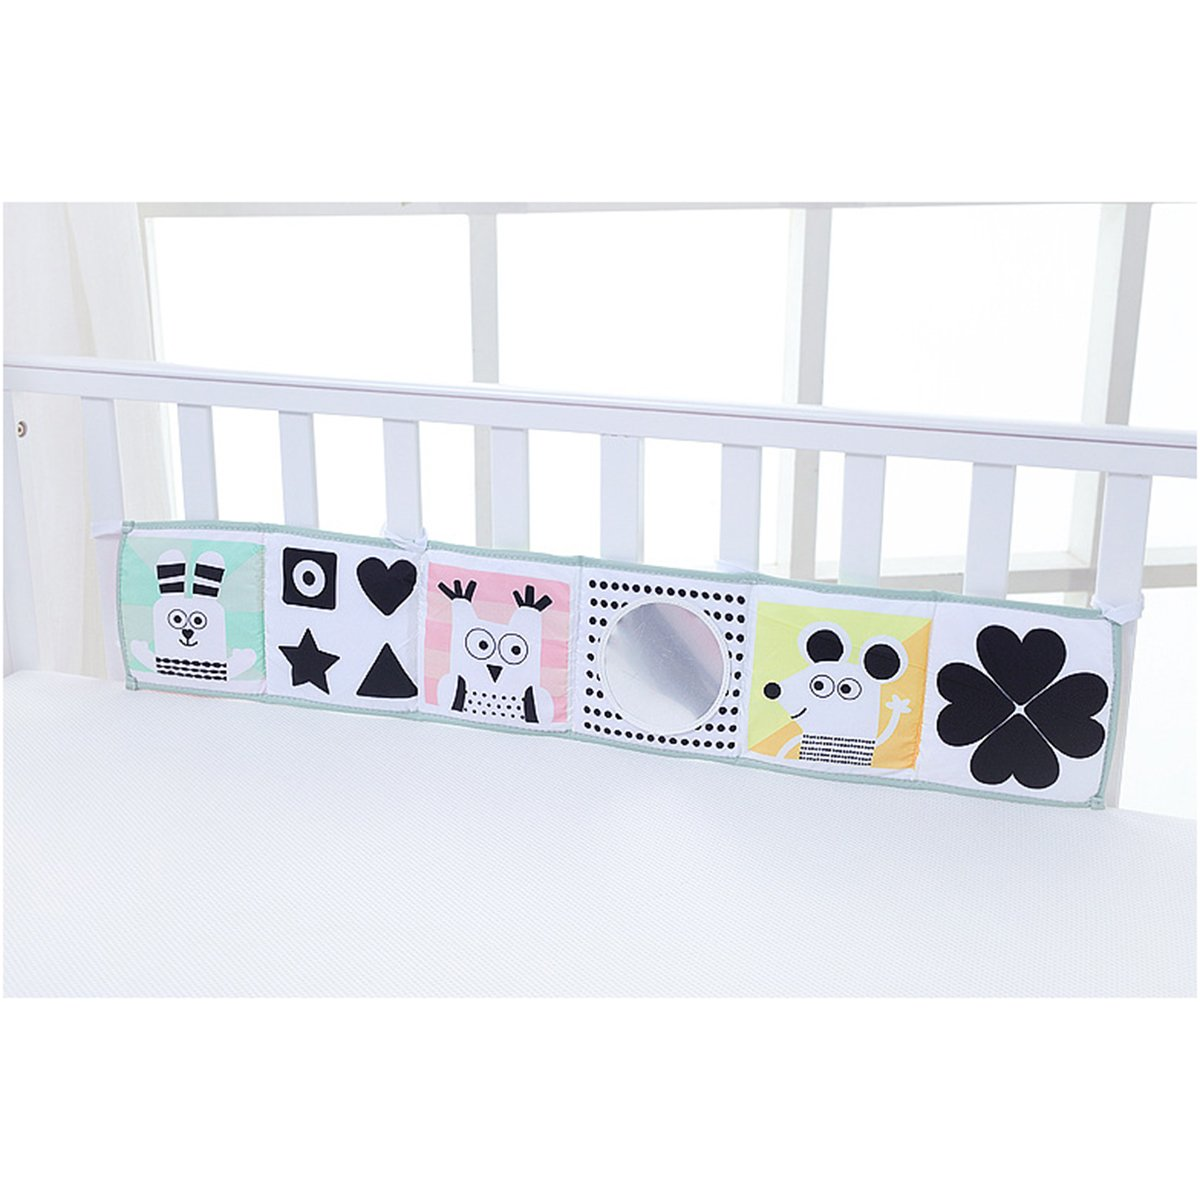 YeahiBaby Clip-on Pram Book for Baby Stroller Pram Carriage and Crib Entertainment and Development (Ladybug Pattern) by YeahiBaby (Image #7)